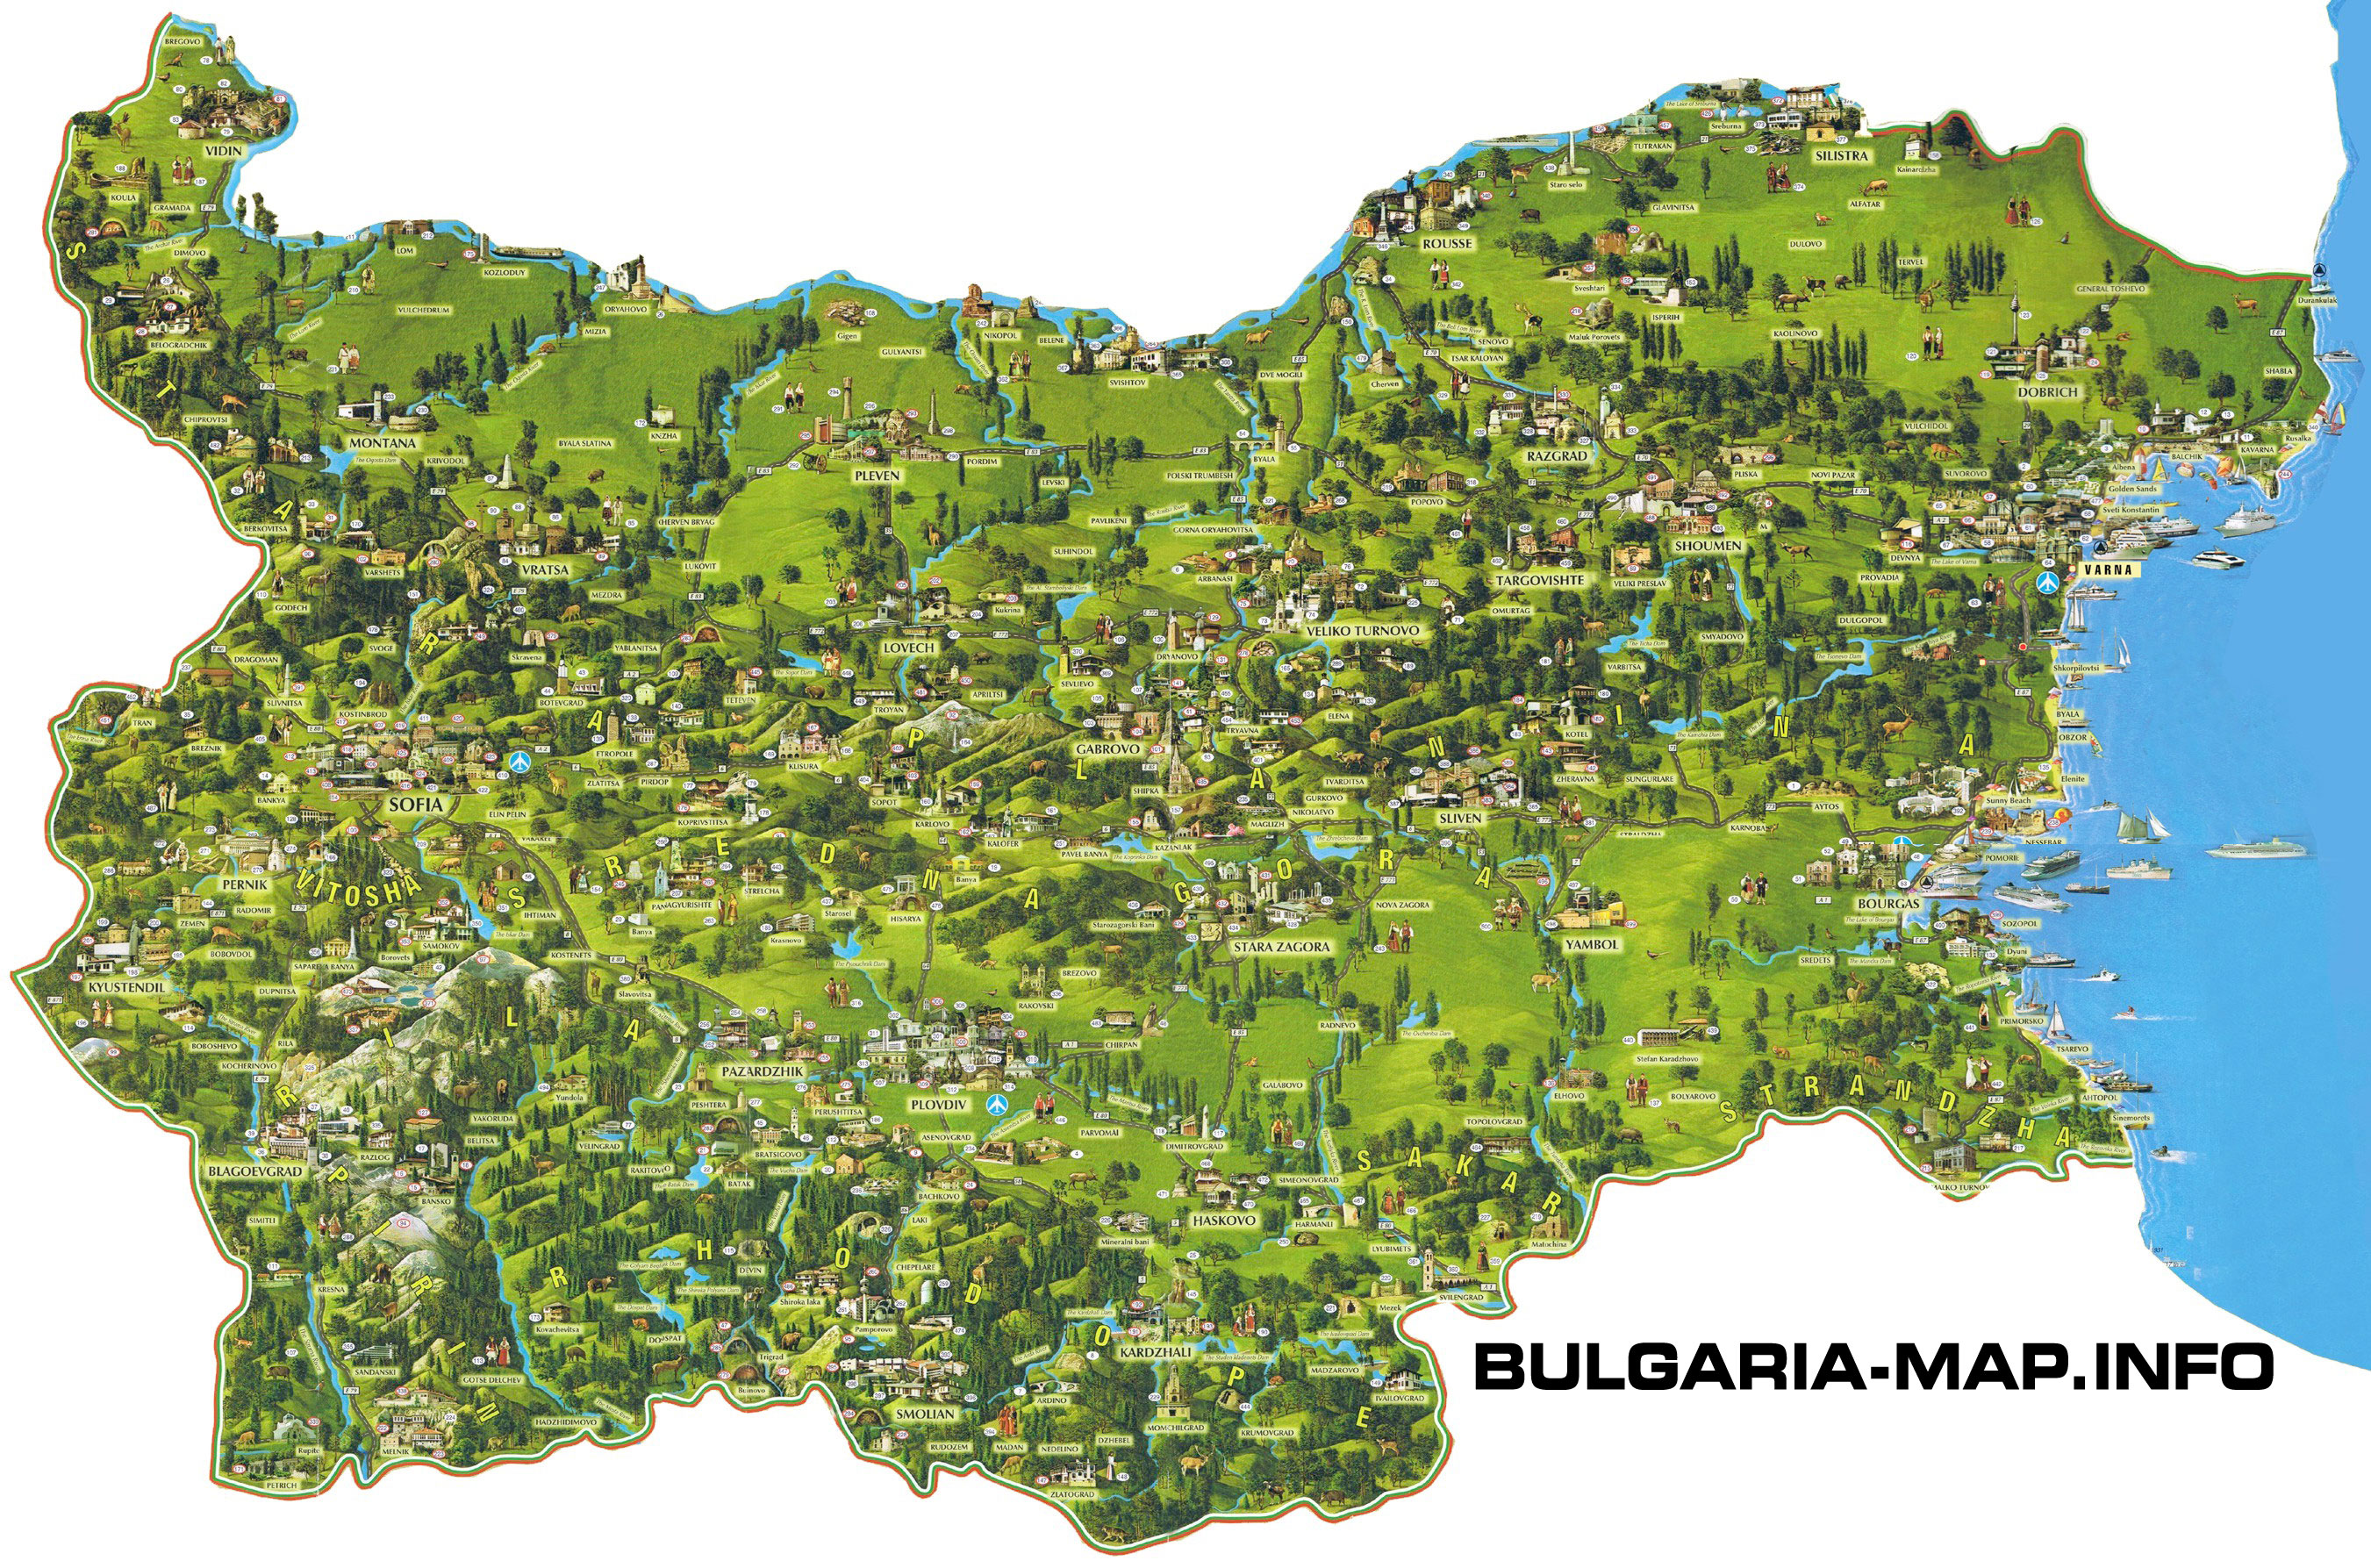 Bulgaria Online Maps Geographical Political Road Railway